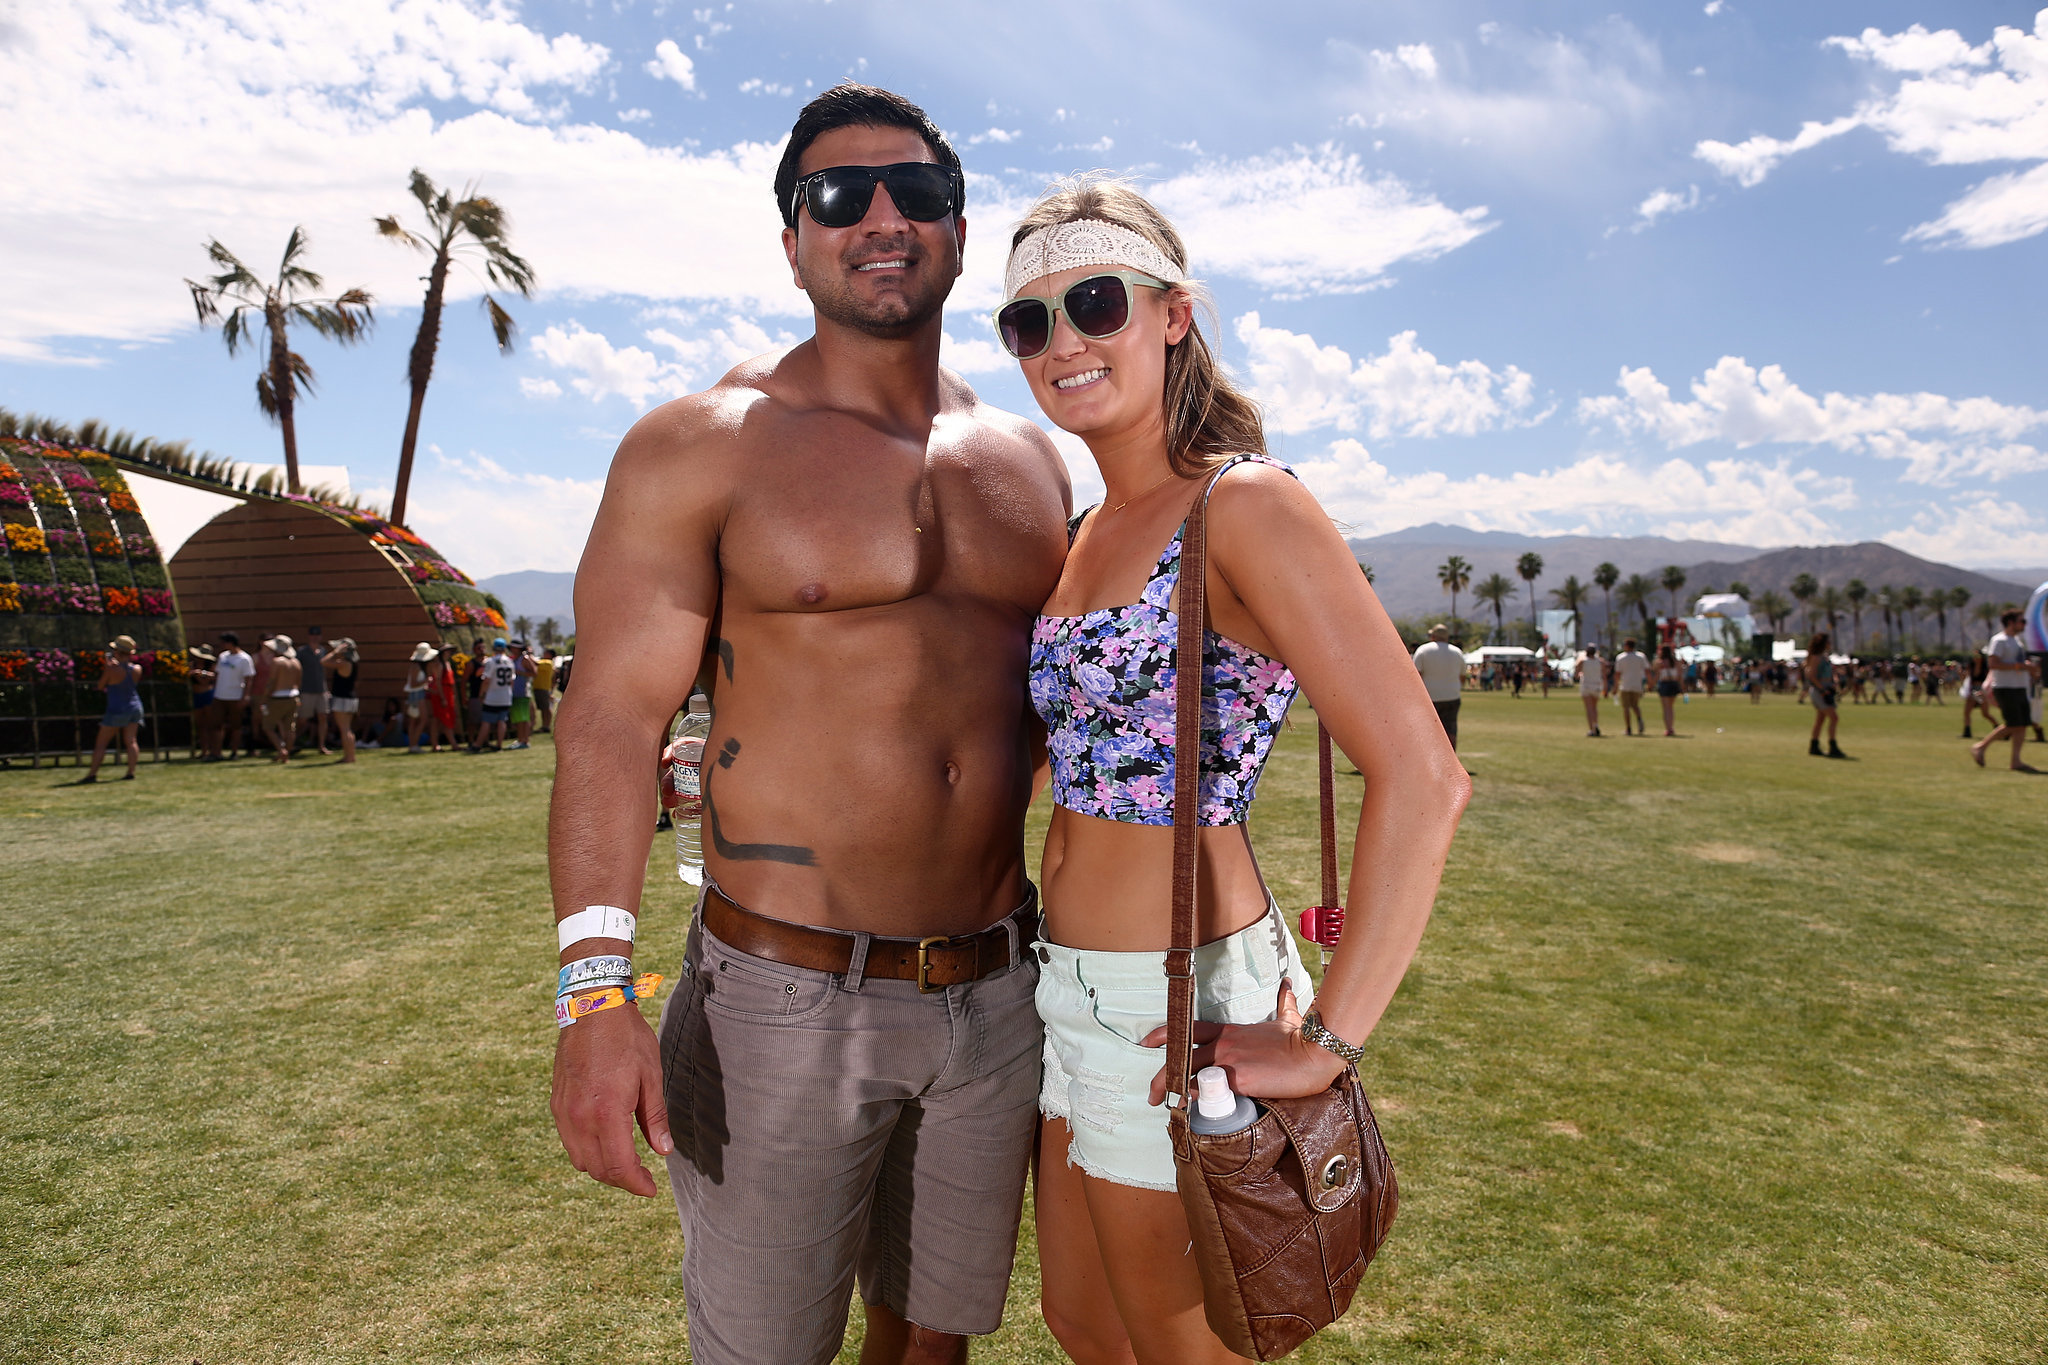 A pair posed at Coachella this year.